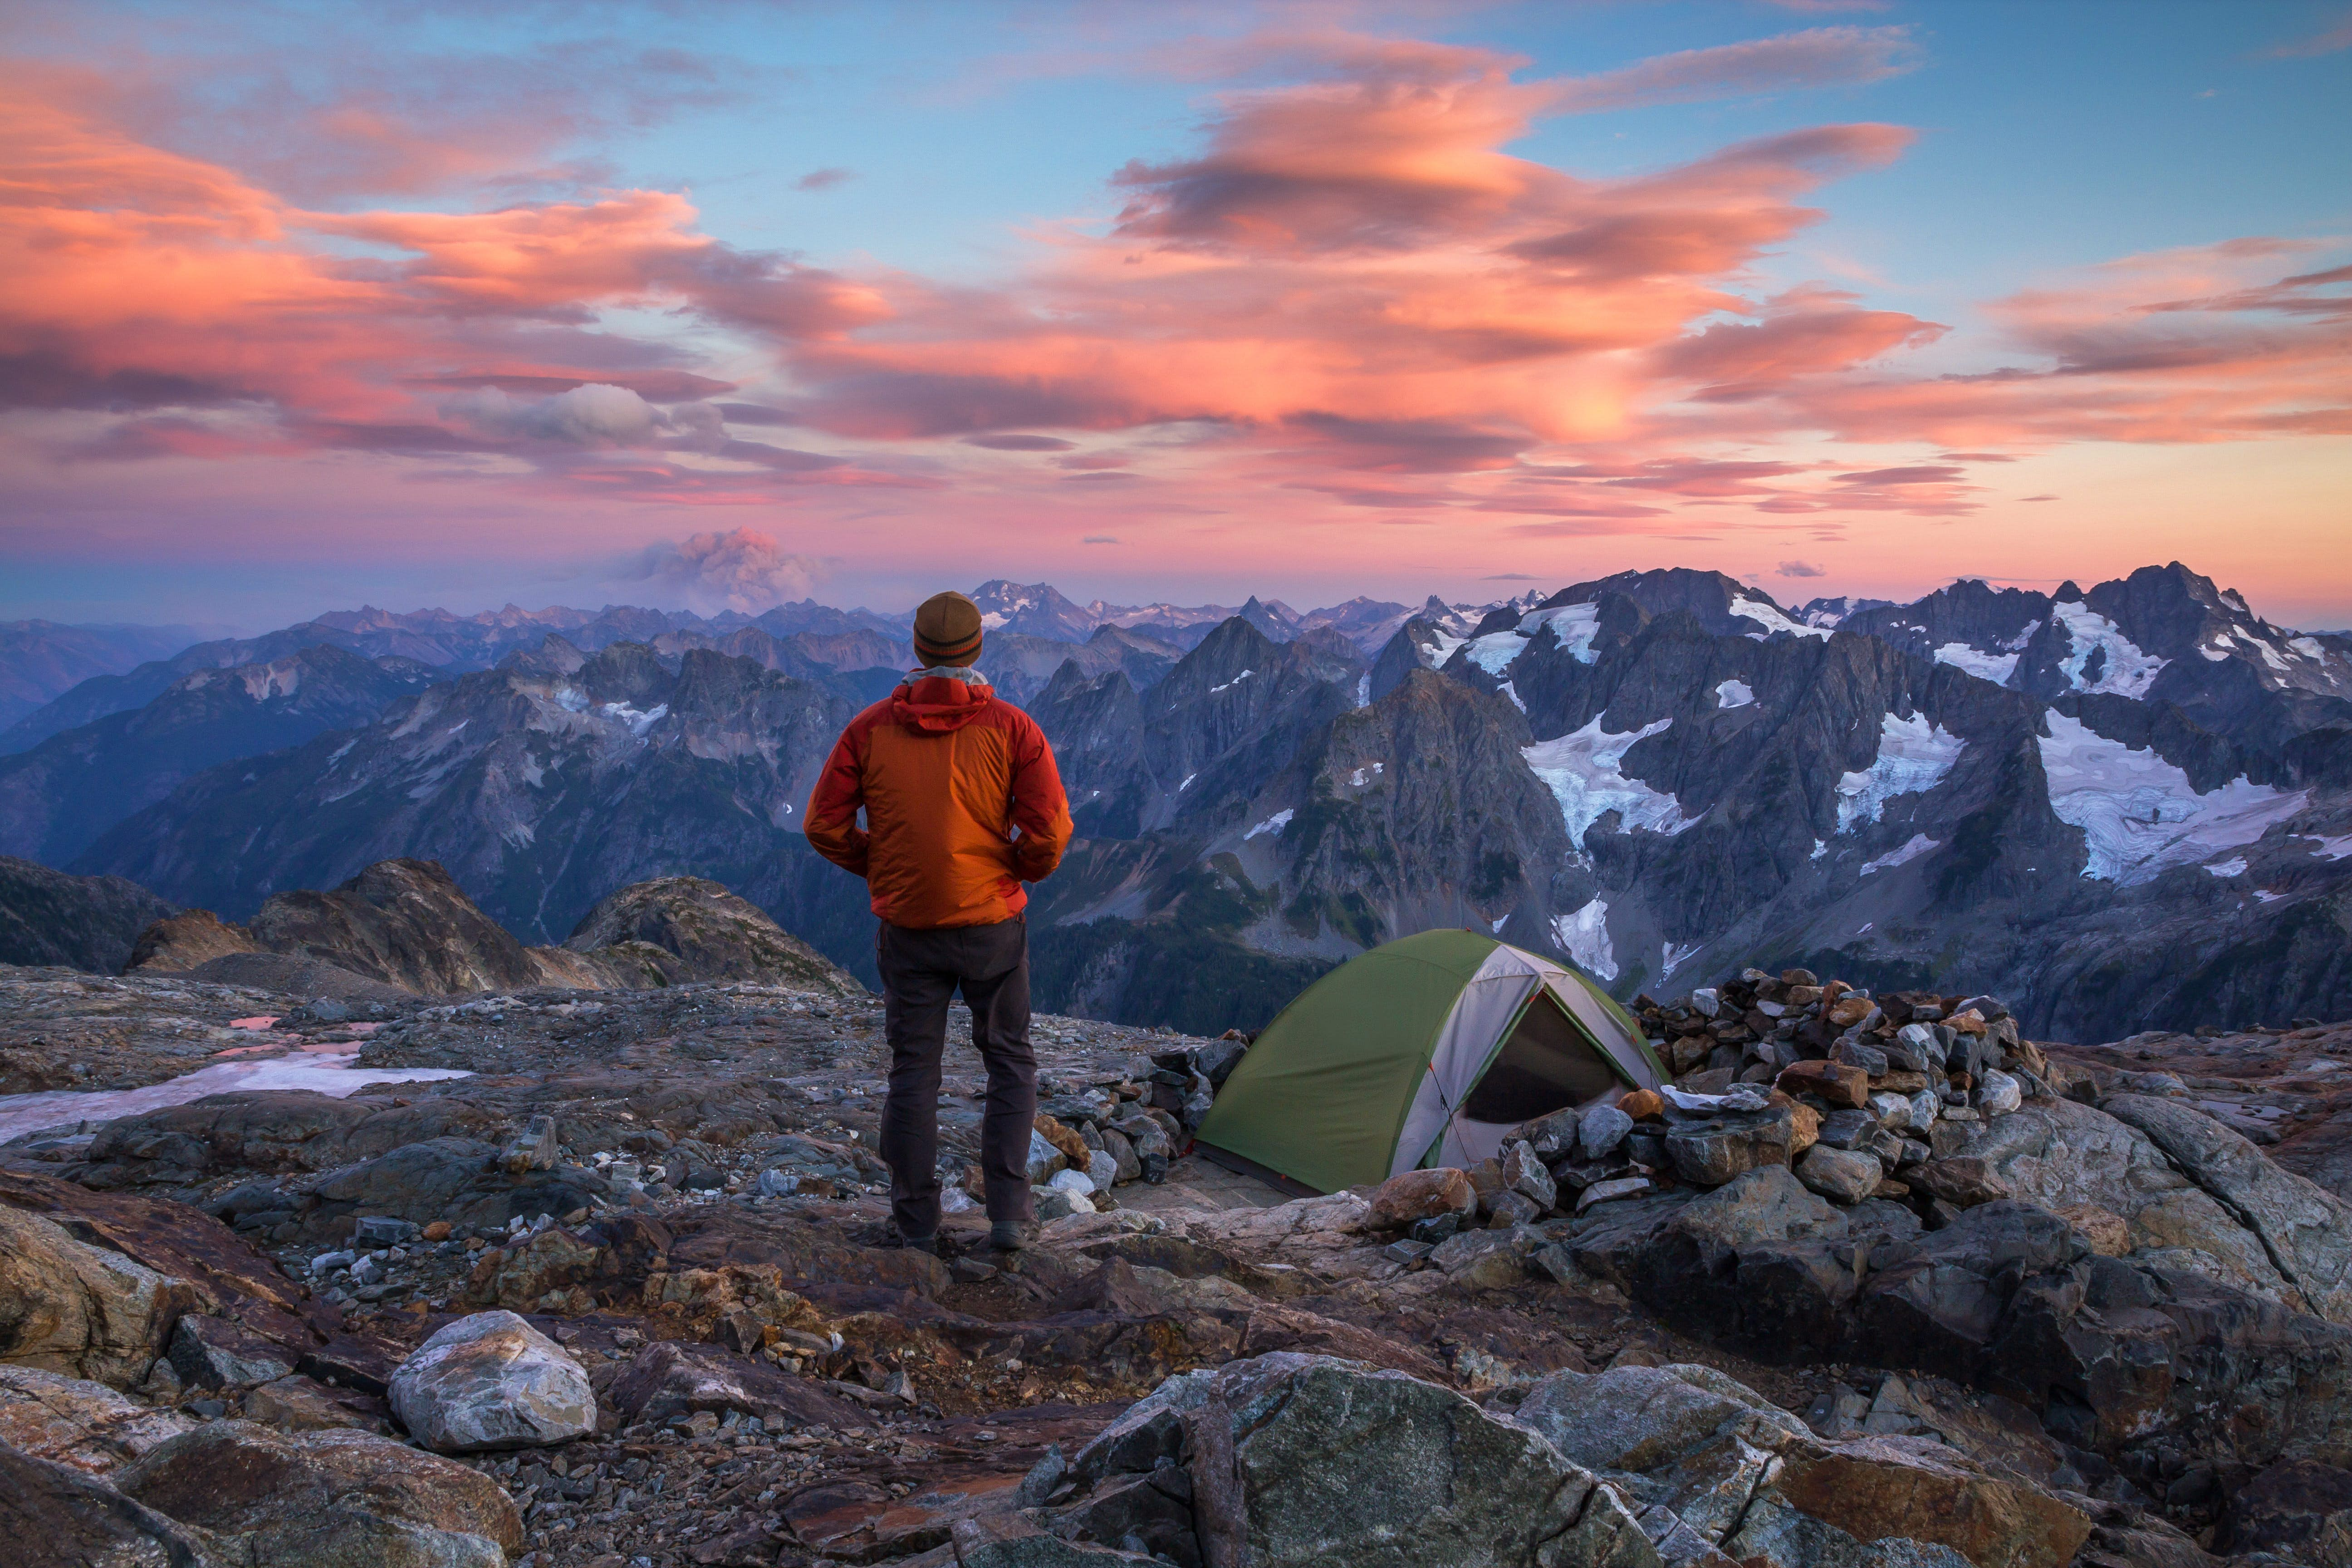 Hiker in warm clothing standing at their mountain-top camp, watching the clouds glow sunset colors above the mountains in North Cascades National Park